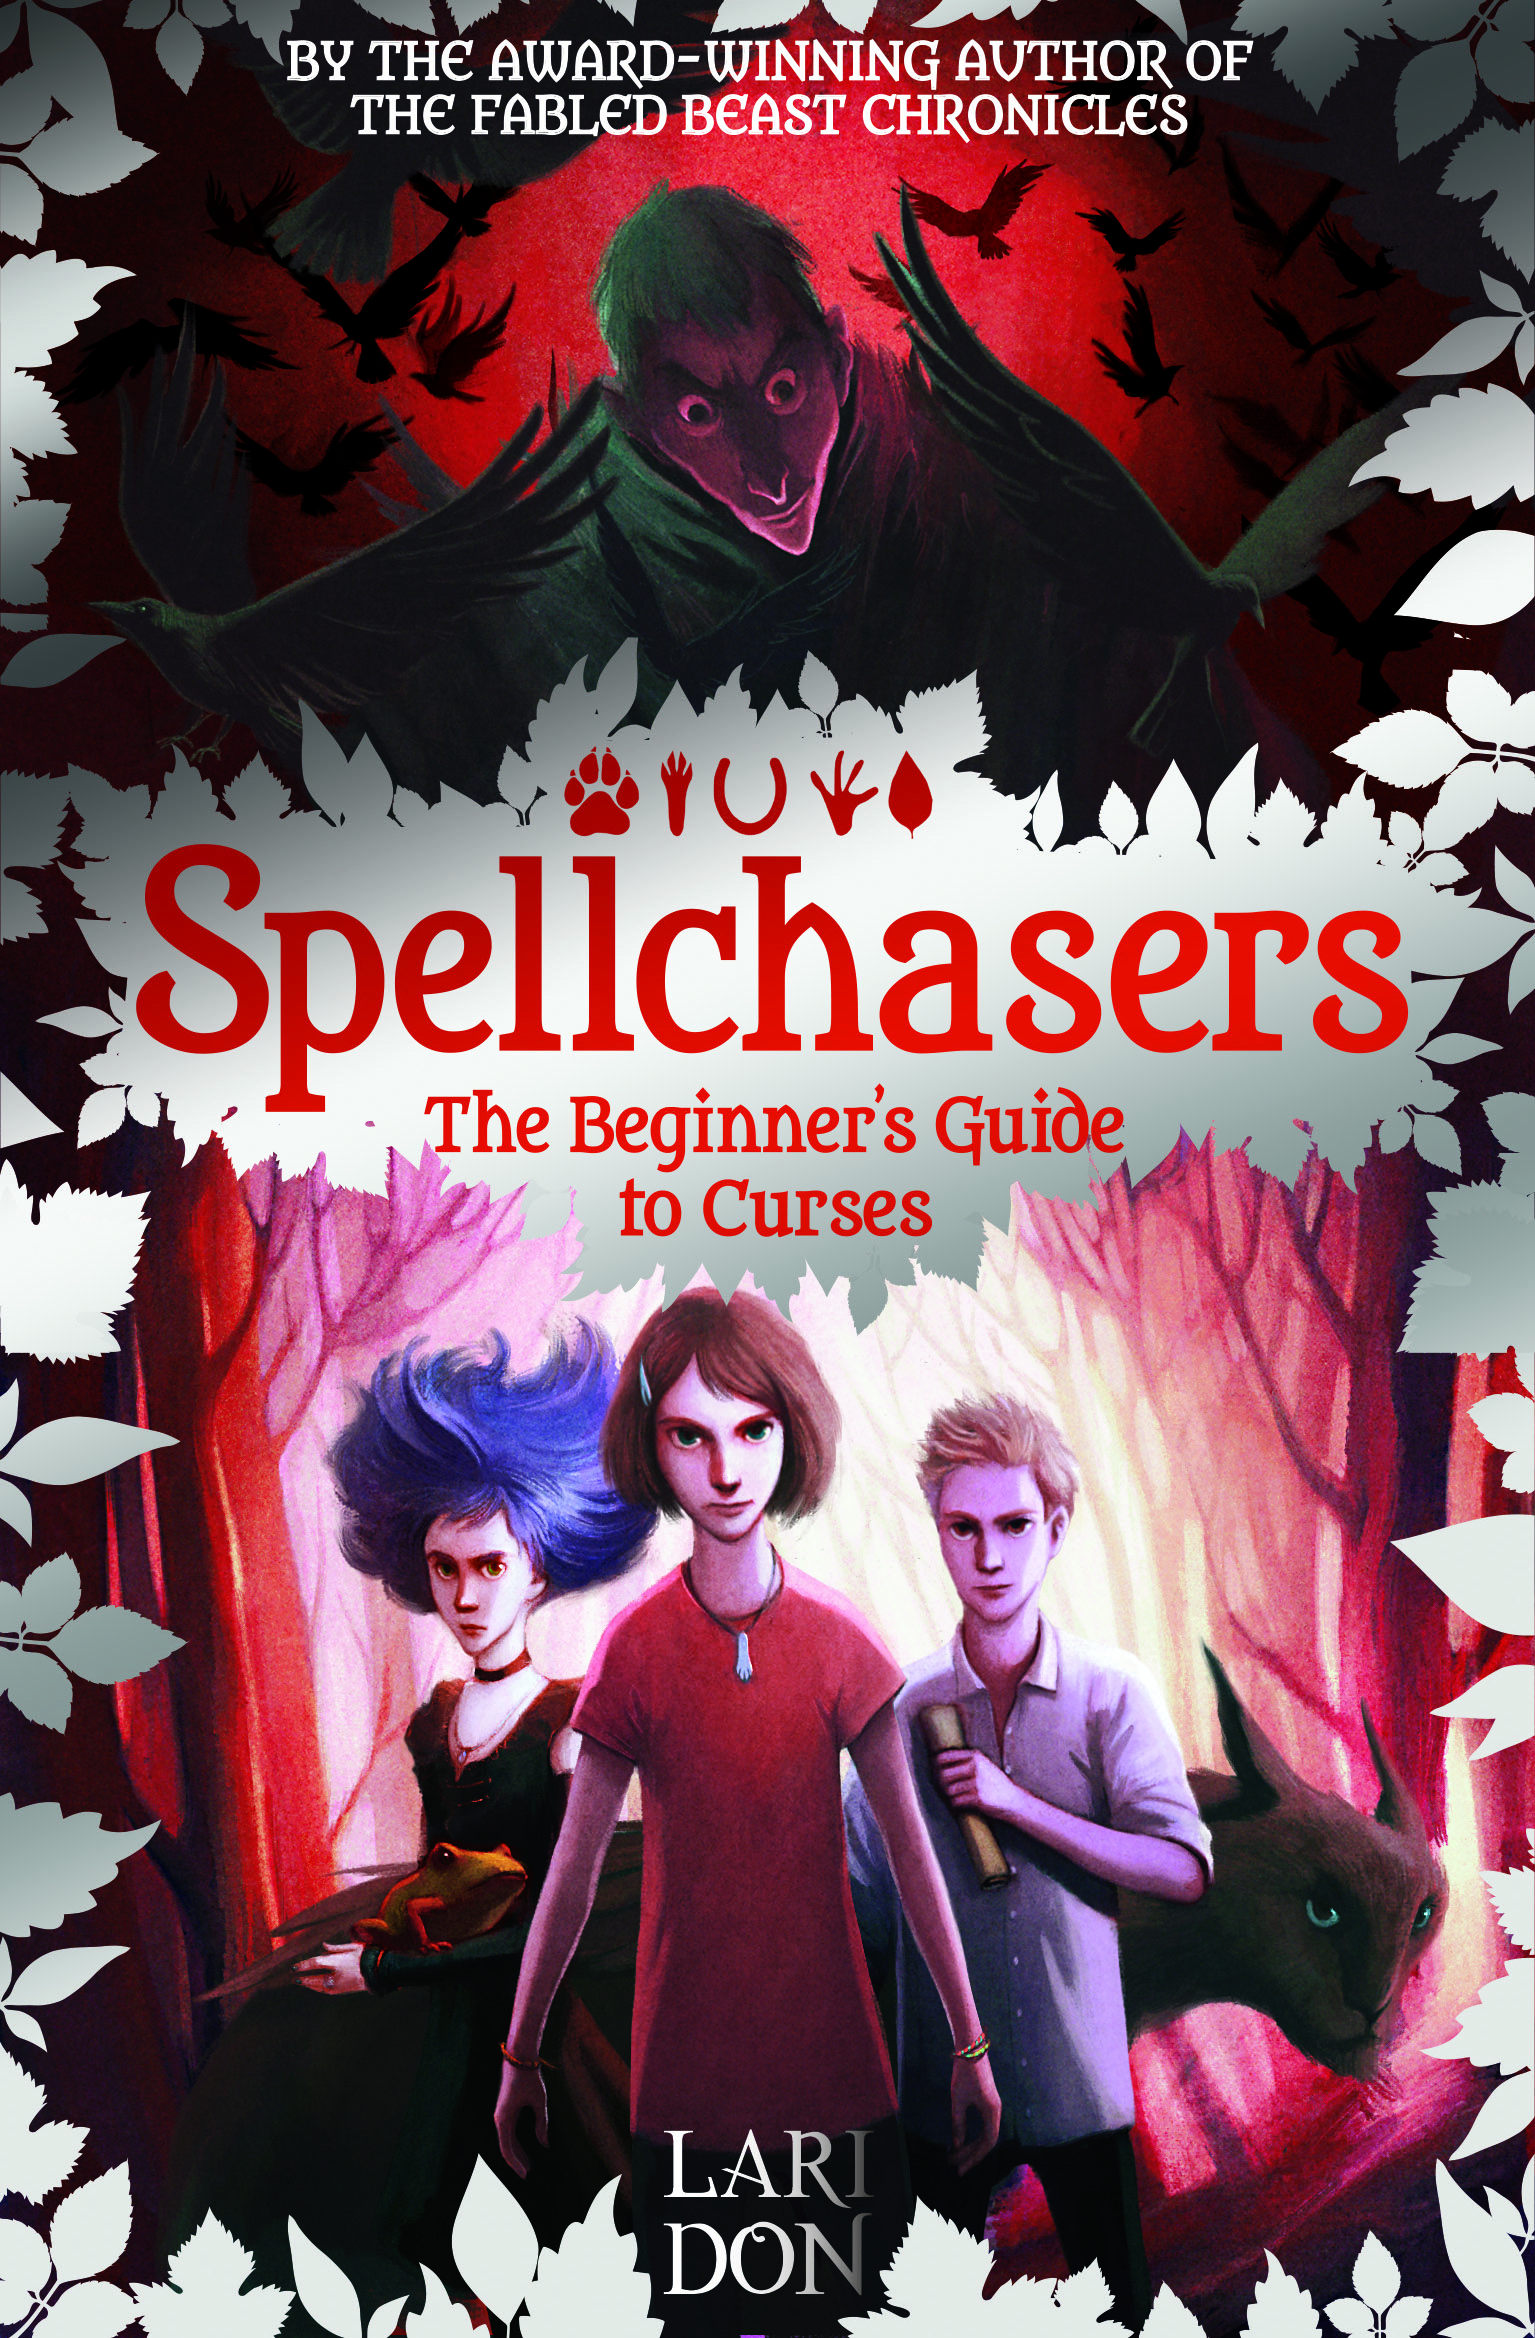 Lari Don Reads from The Beginner's Guide to Curses